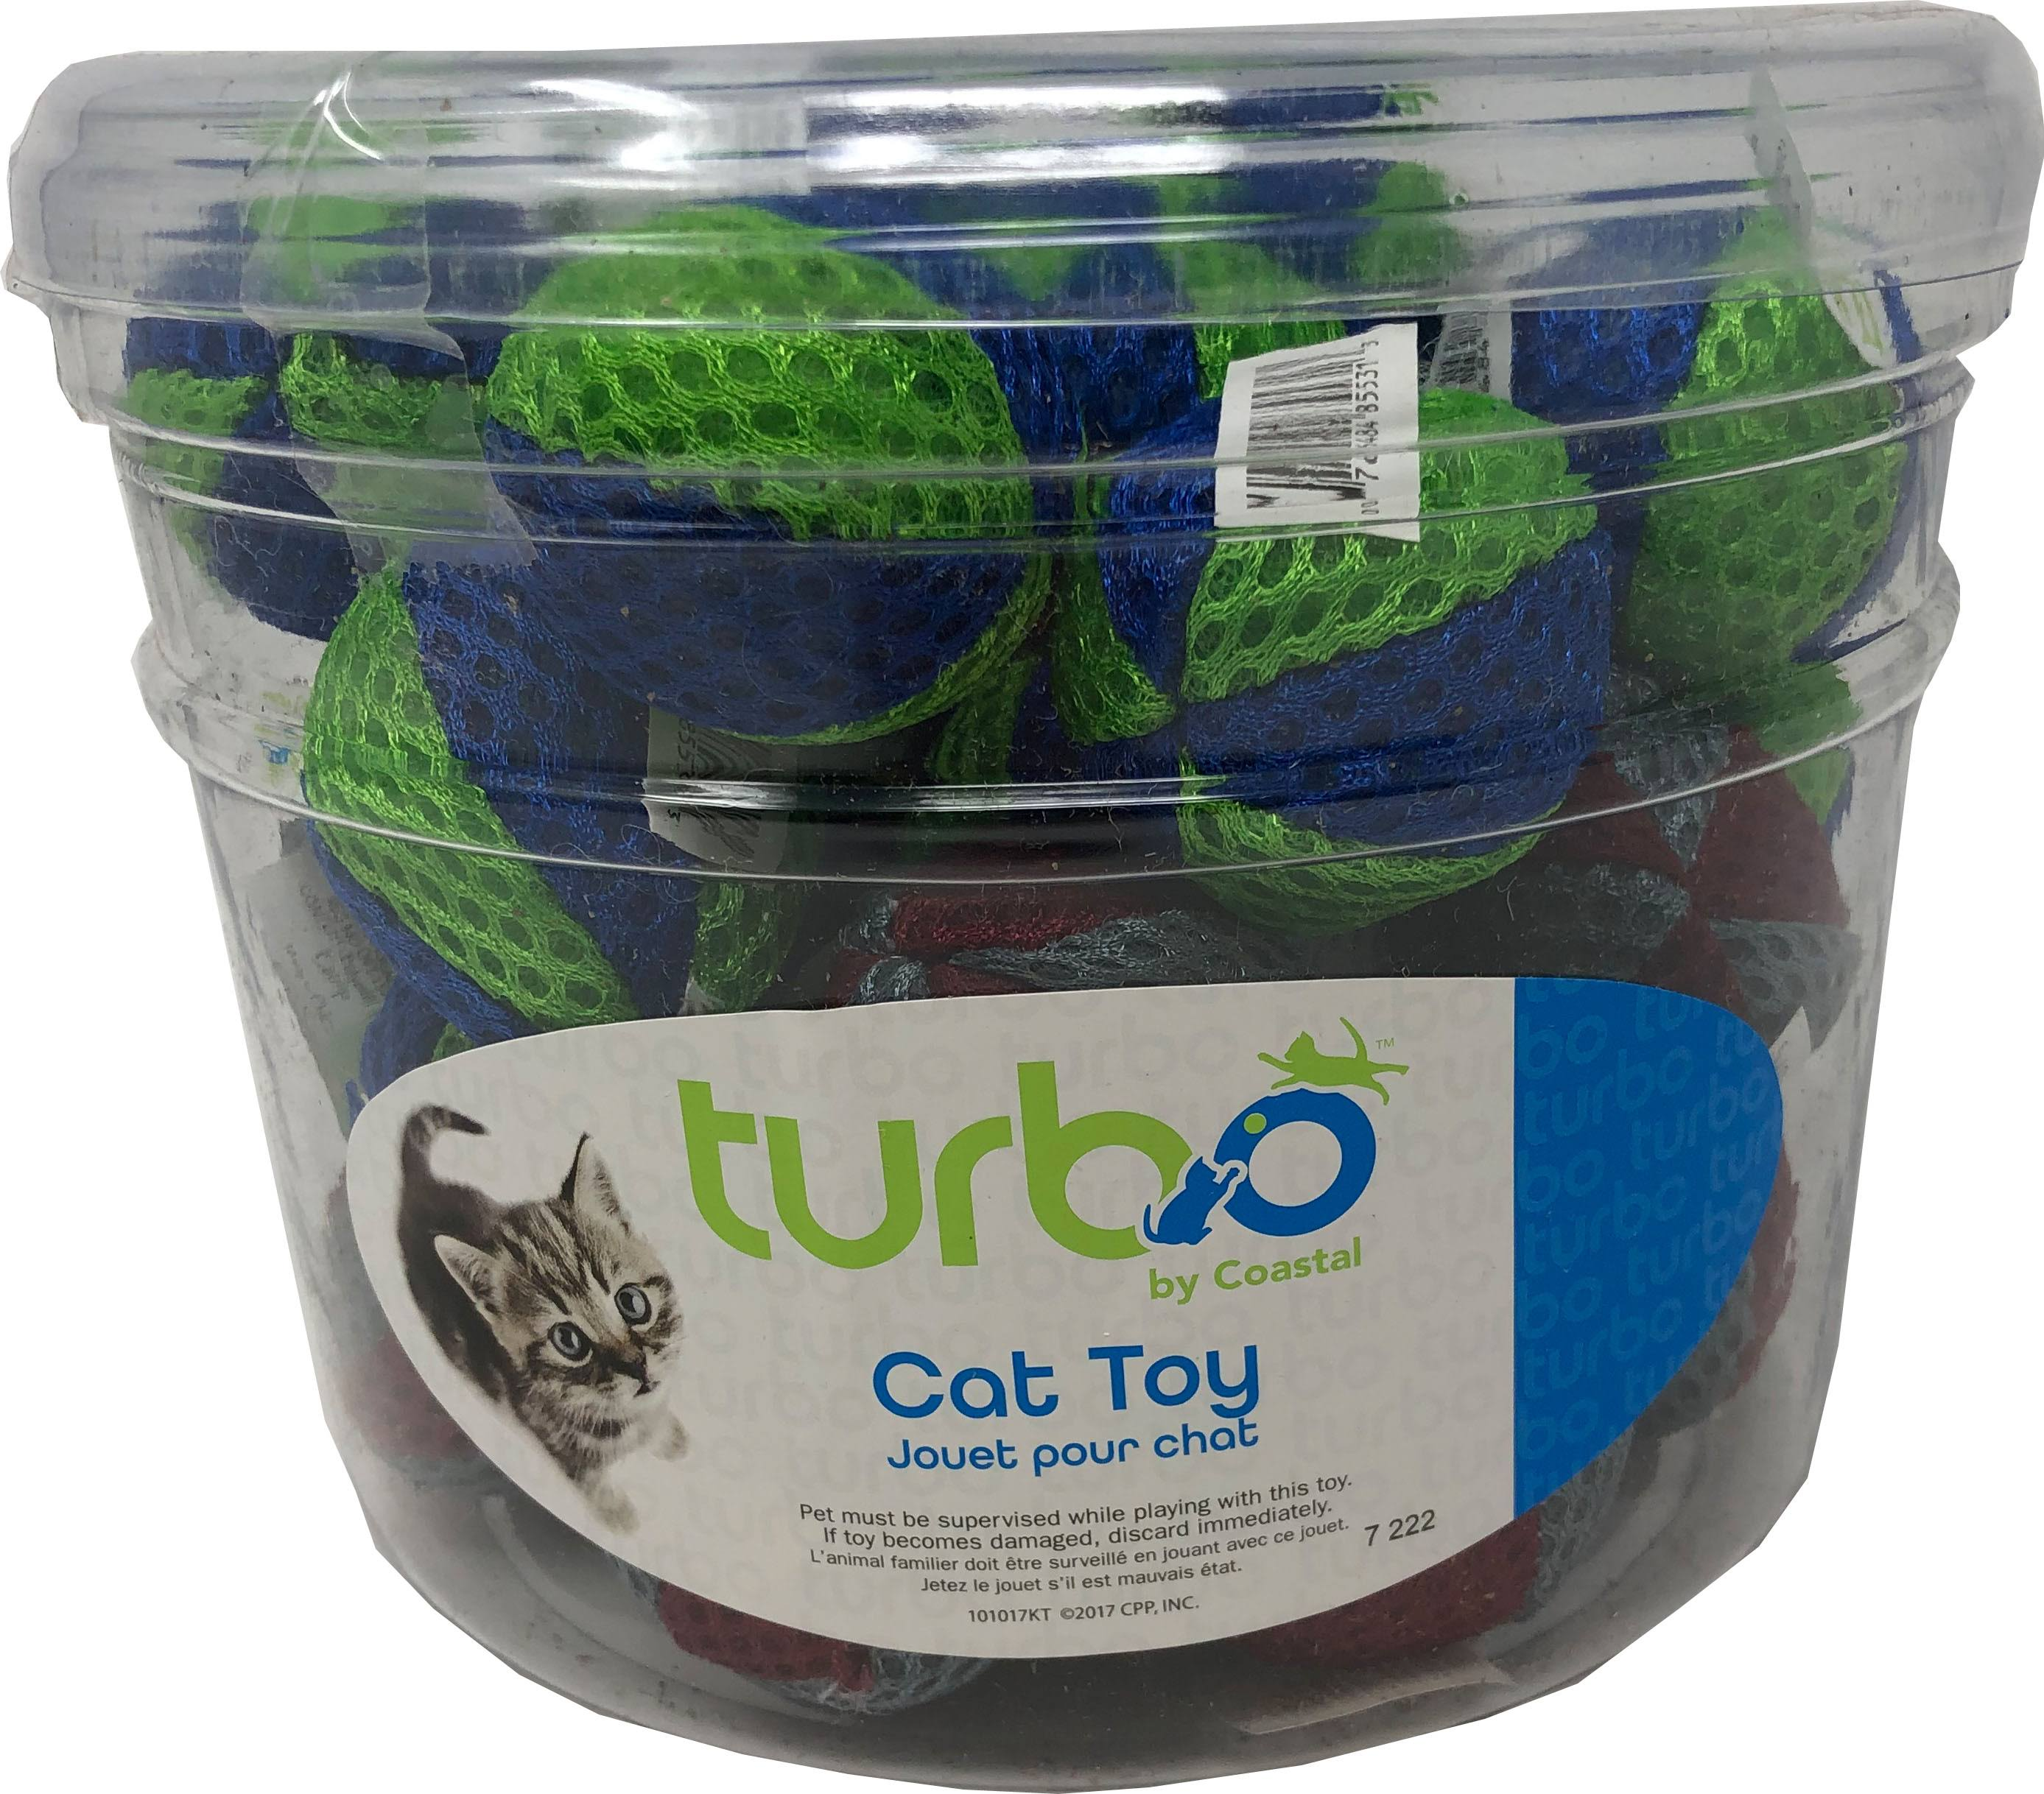 Coastal Pet Products 80531 NCLCAT Turbo Beach Balls Cat Toy Canister - Multicolor 36 Piece - Pack of 8